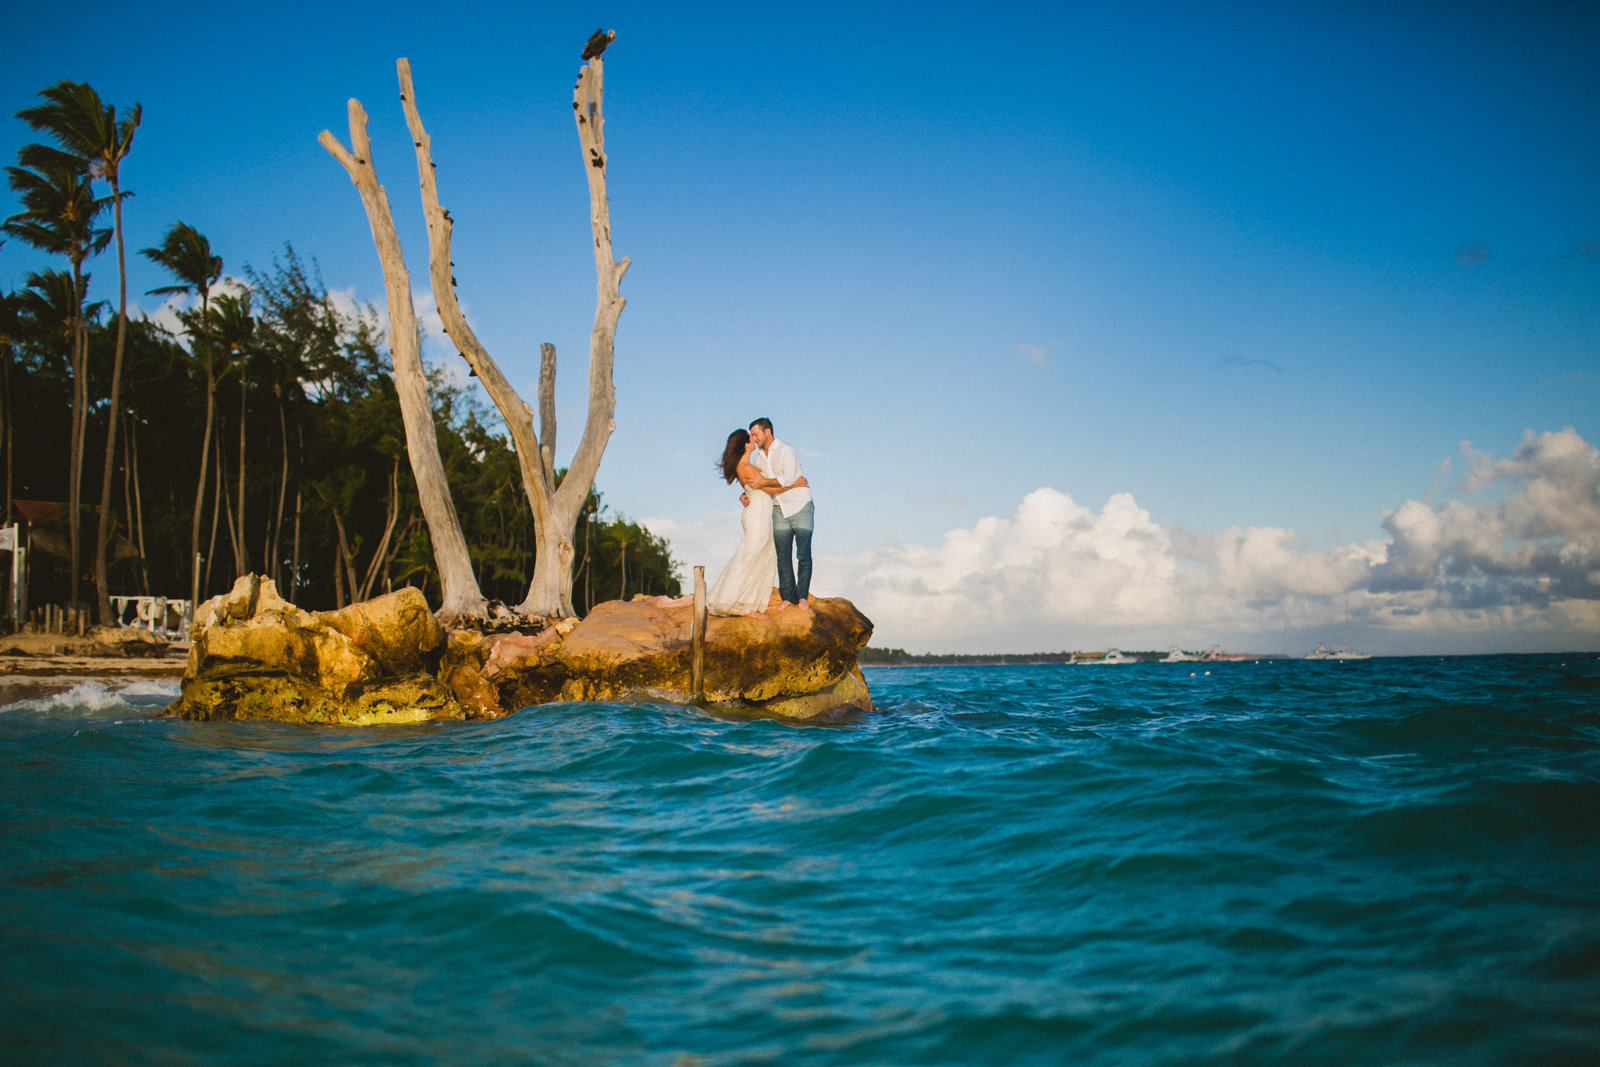 punta_cana_canada_intimate_wedding_dress_photographer_katya_nova_093